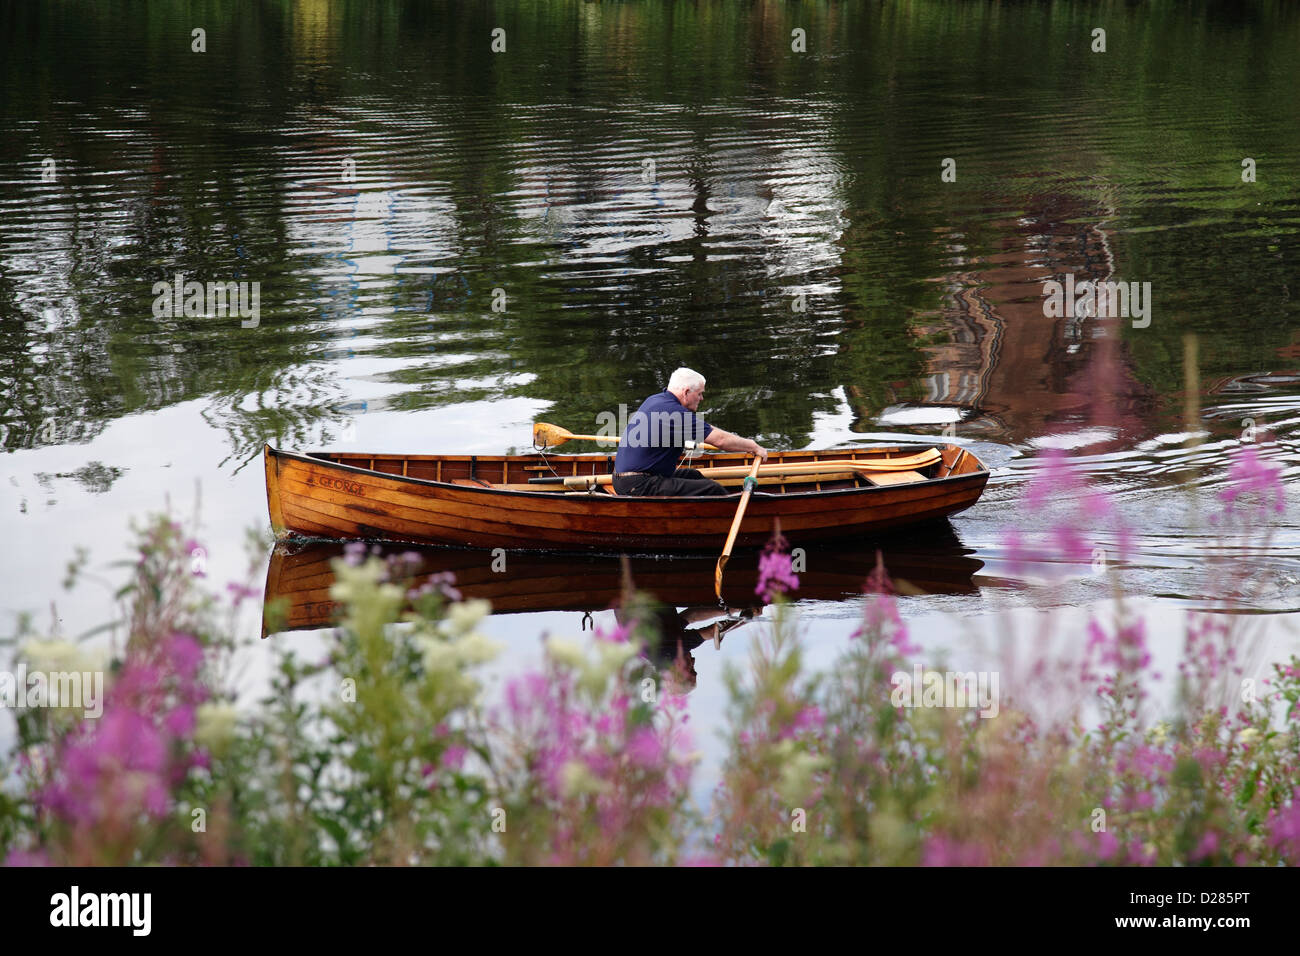 Officer George Parsonage of the charity the Glasgow Humane Society rowing on the River Clyde in Glasgow, Scotland, - Stock Image